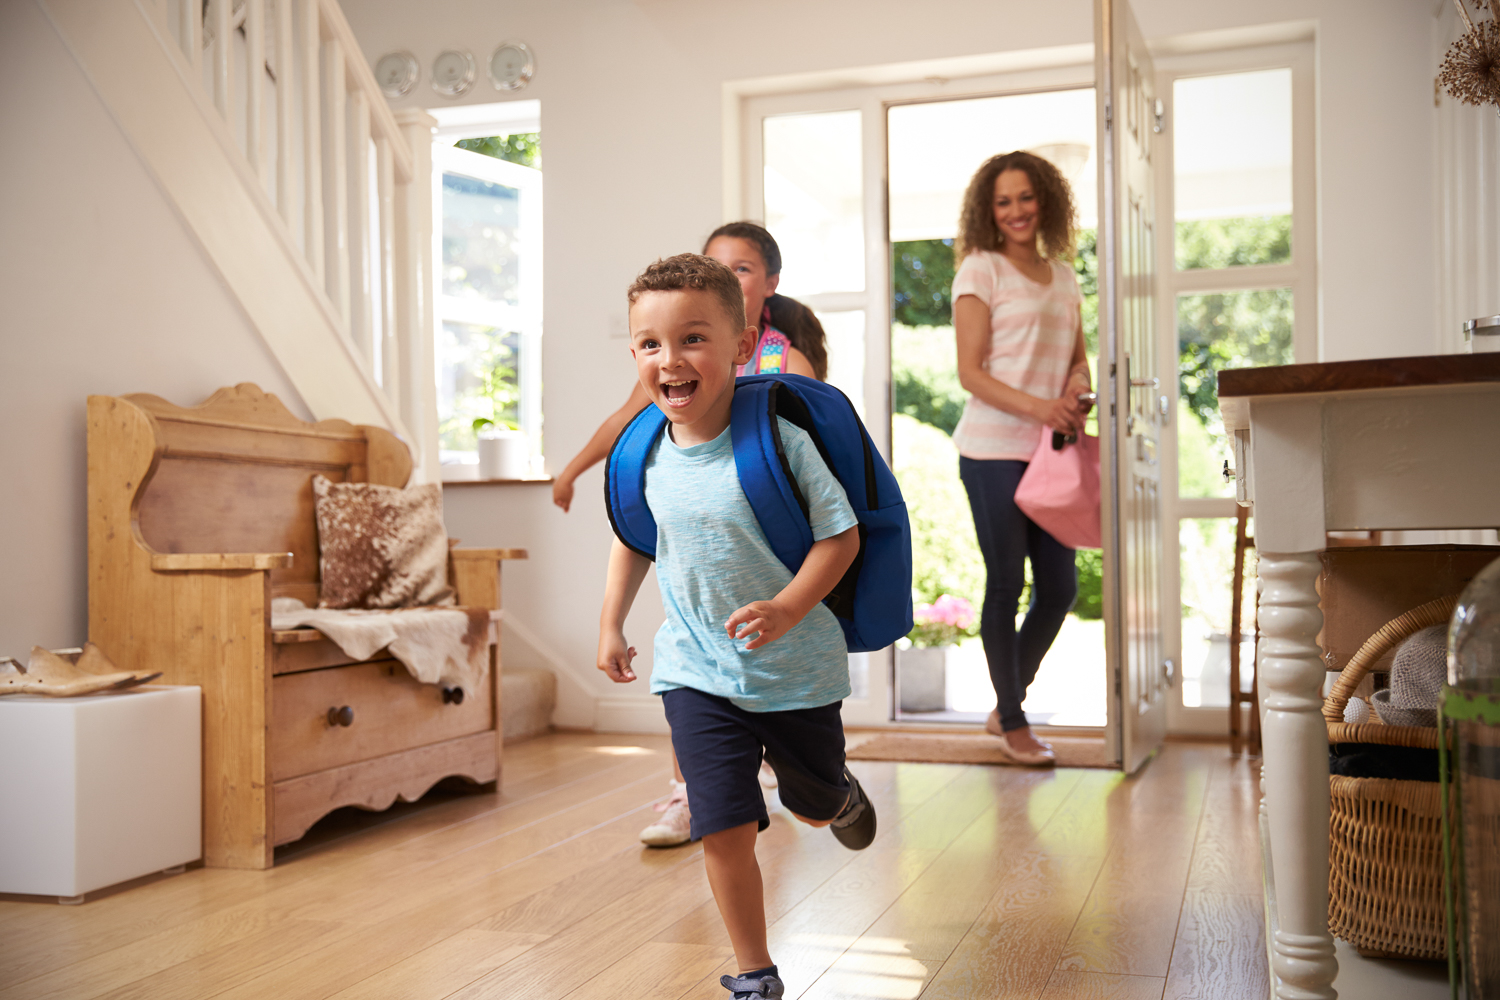 Kids excited to be home from school with their mom